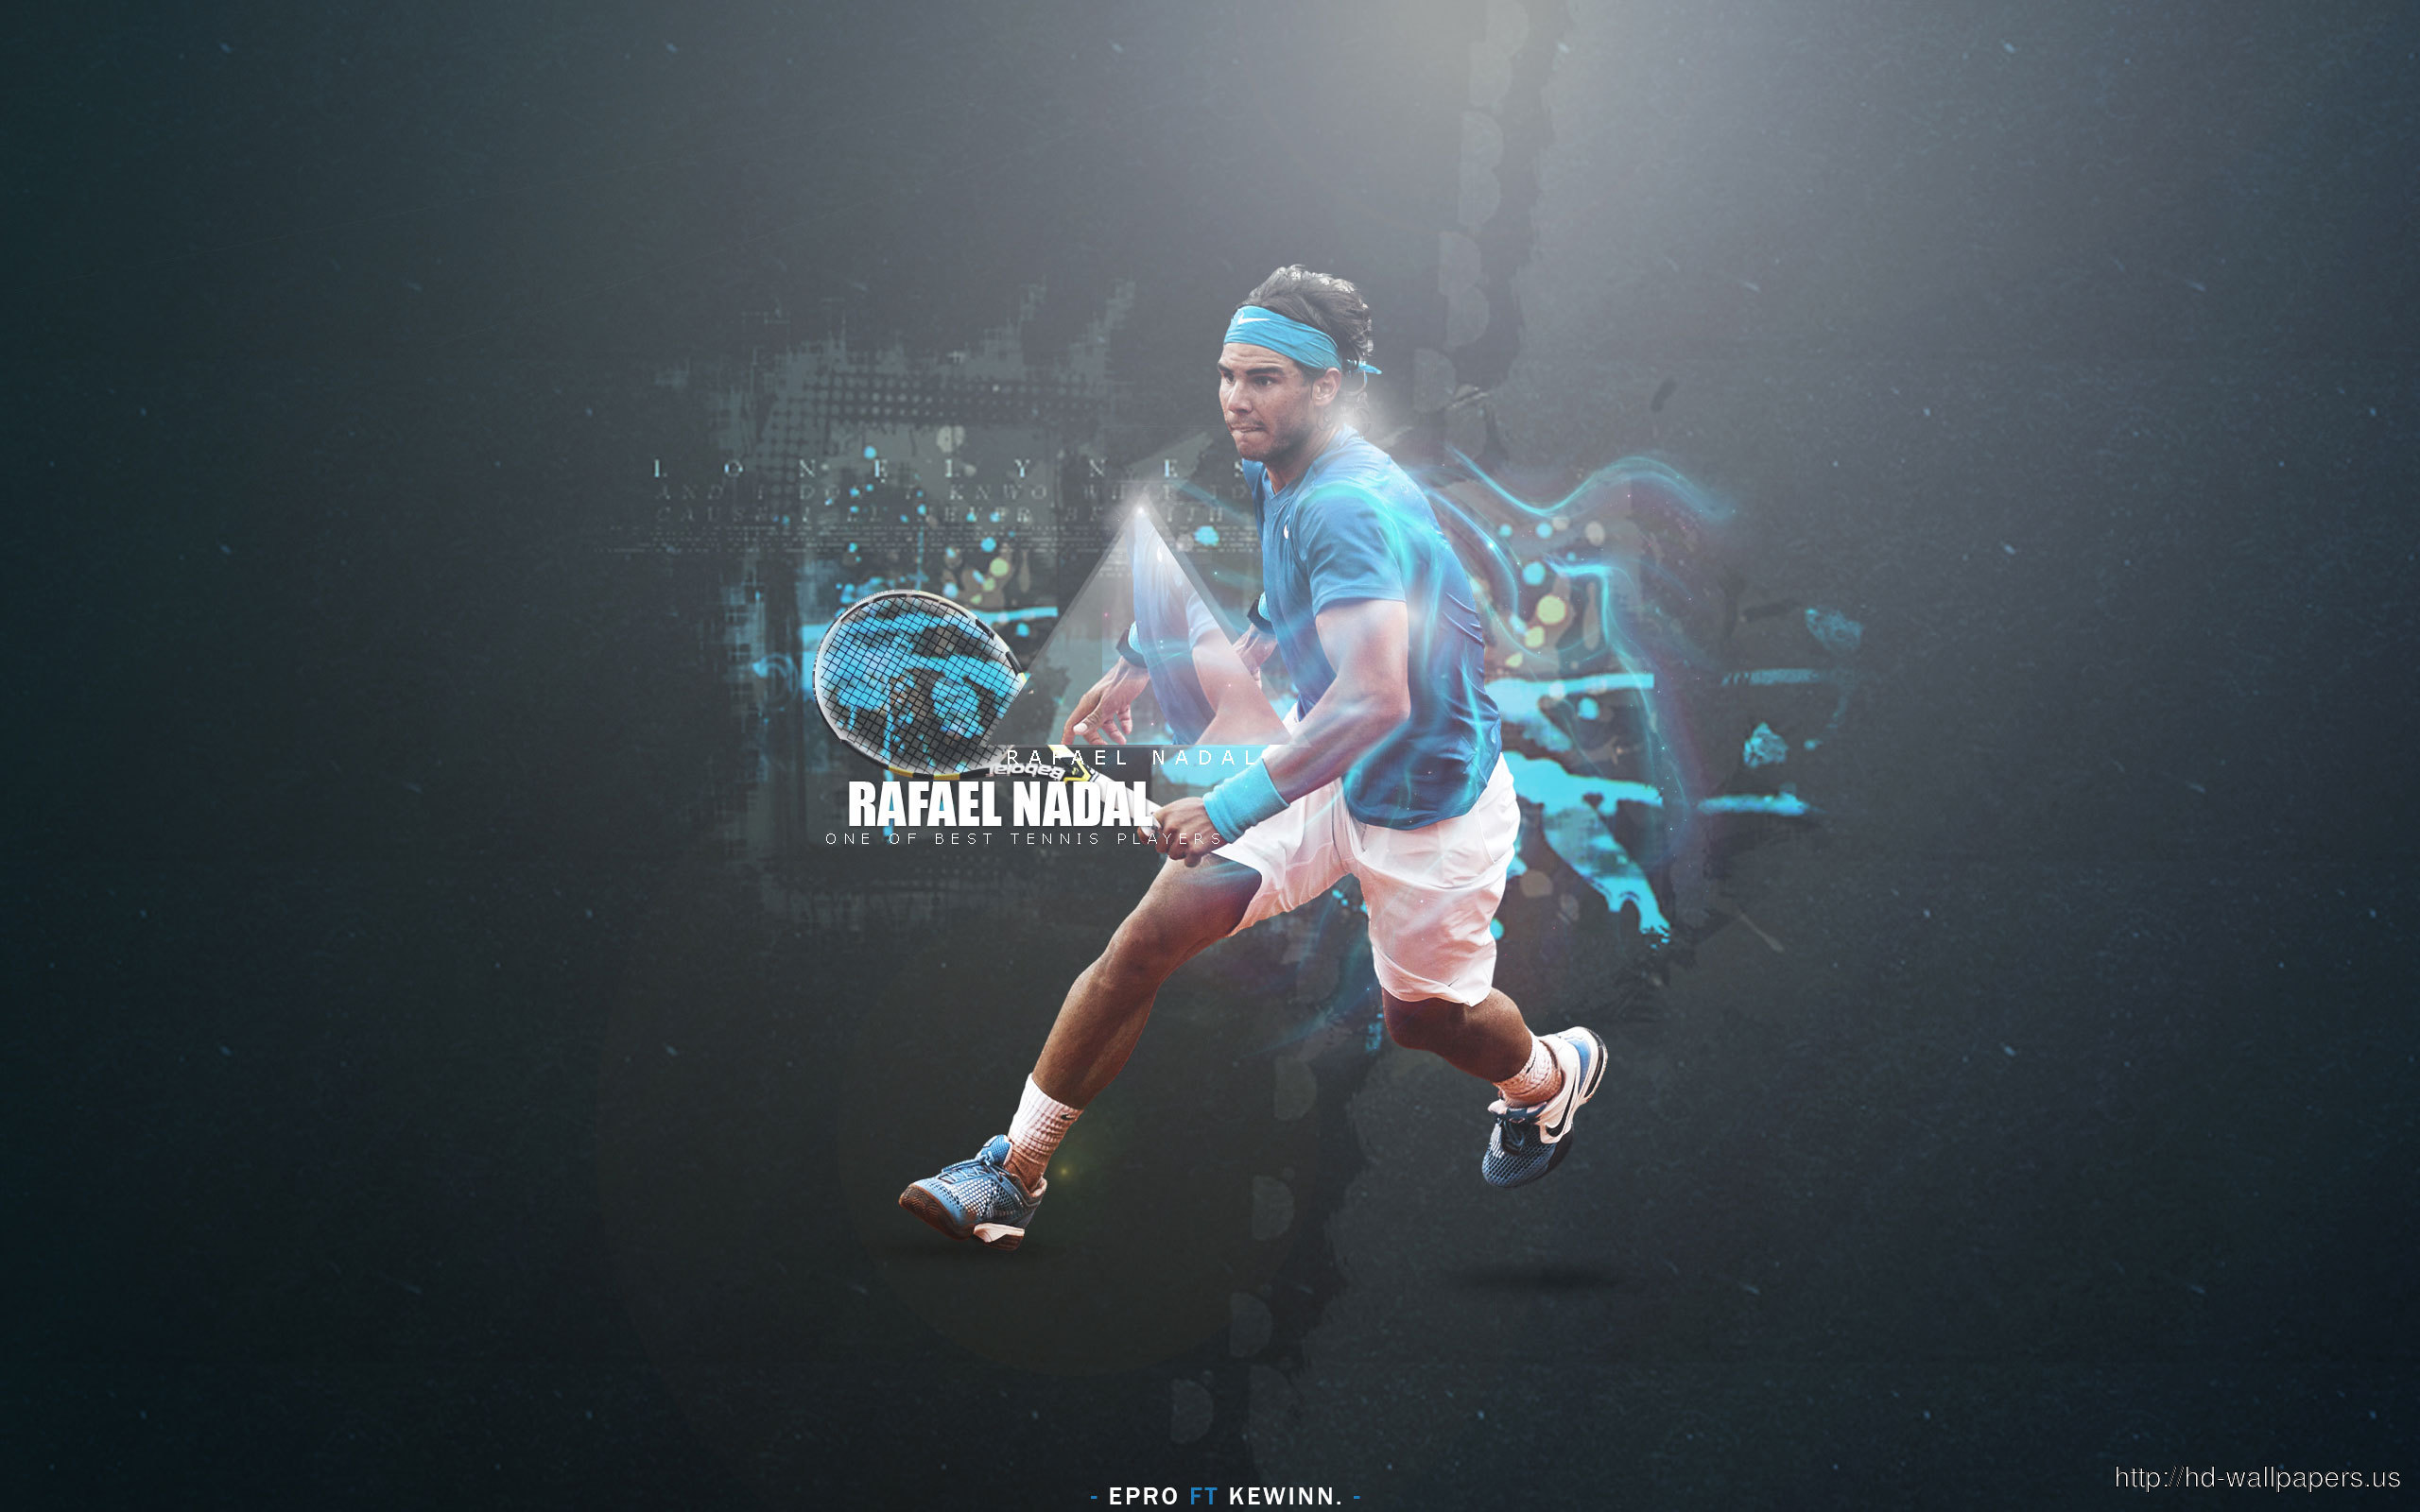 Rafael Nadal Wallpapers 2560x1600 px 273H691   4USkY 2560x1600